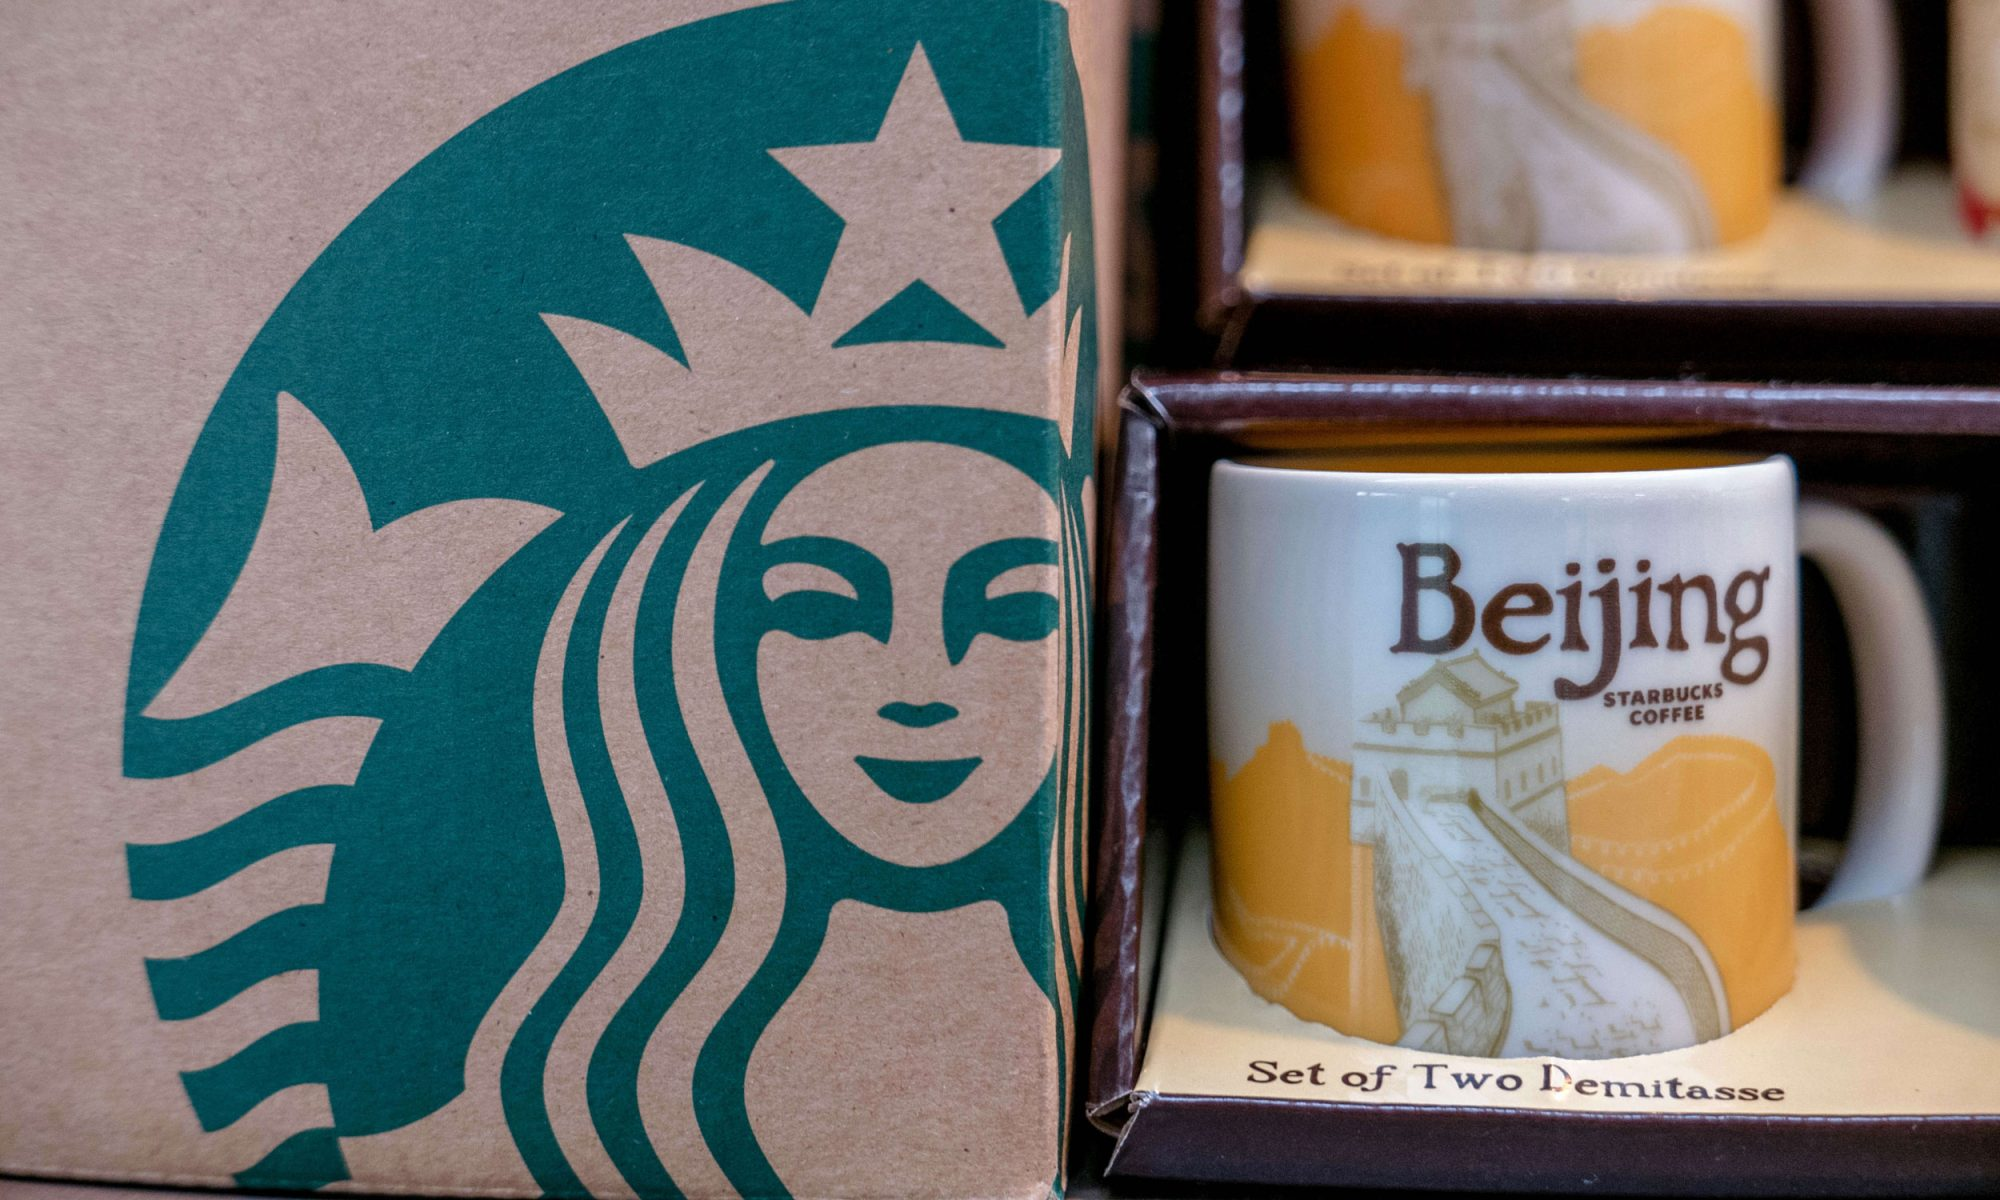 EC: Sip Your Way Around the World with These City-Themed Starbucks Mugs